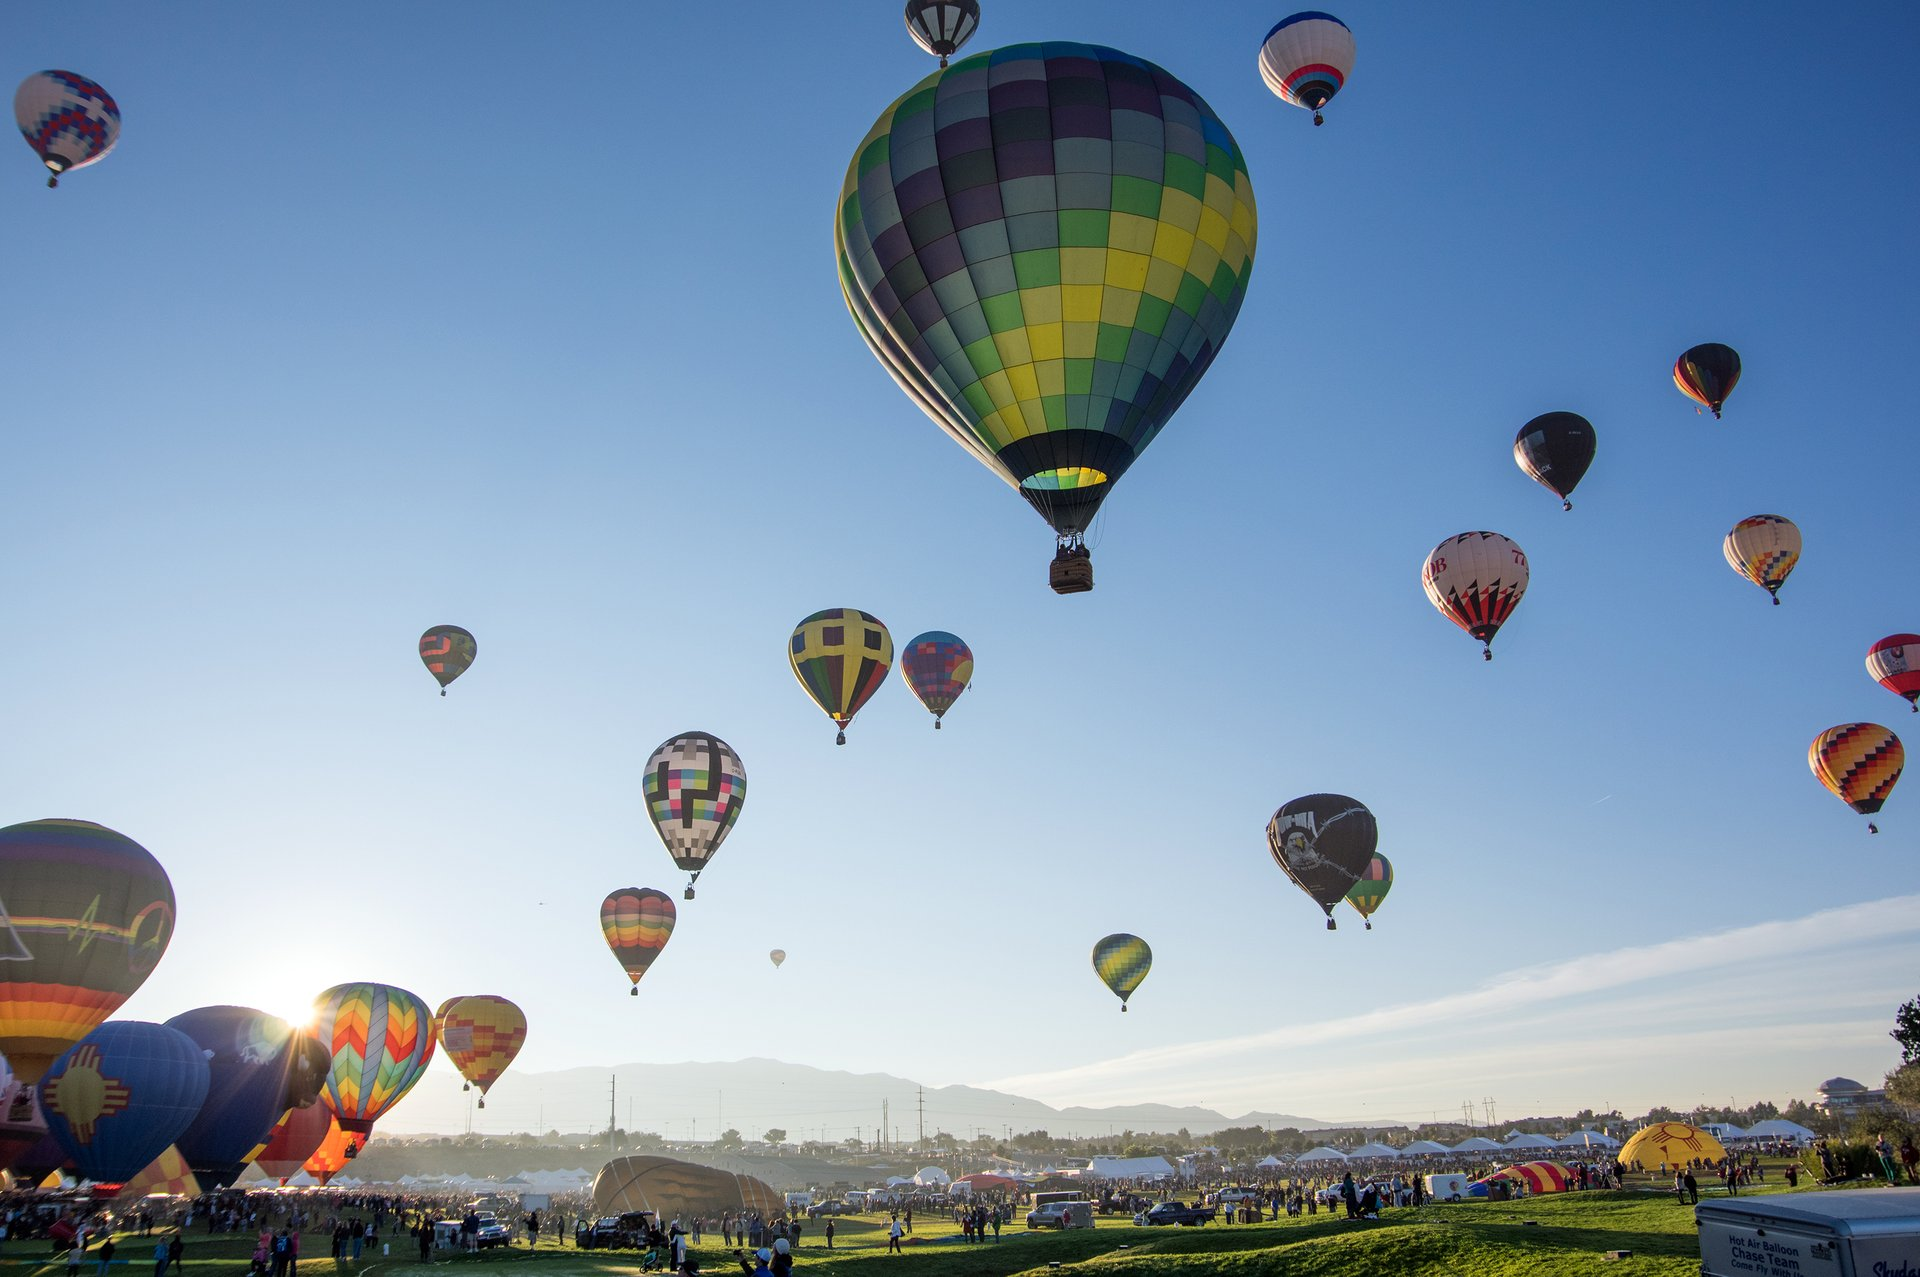 Best time for Albuquerque International Balloon Fiesta in New Mexico 2020